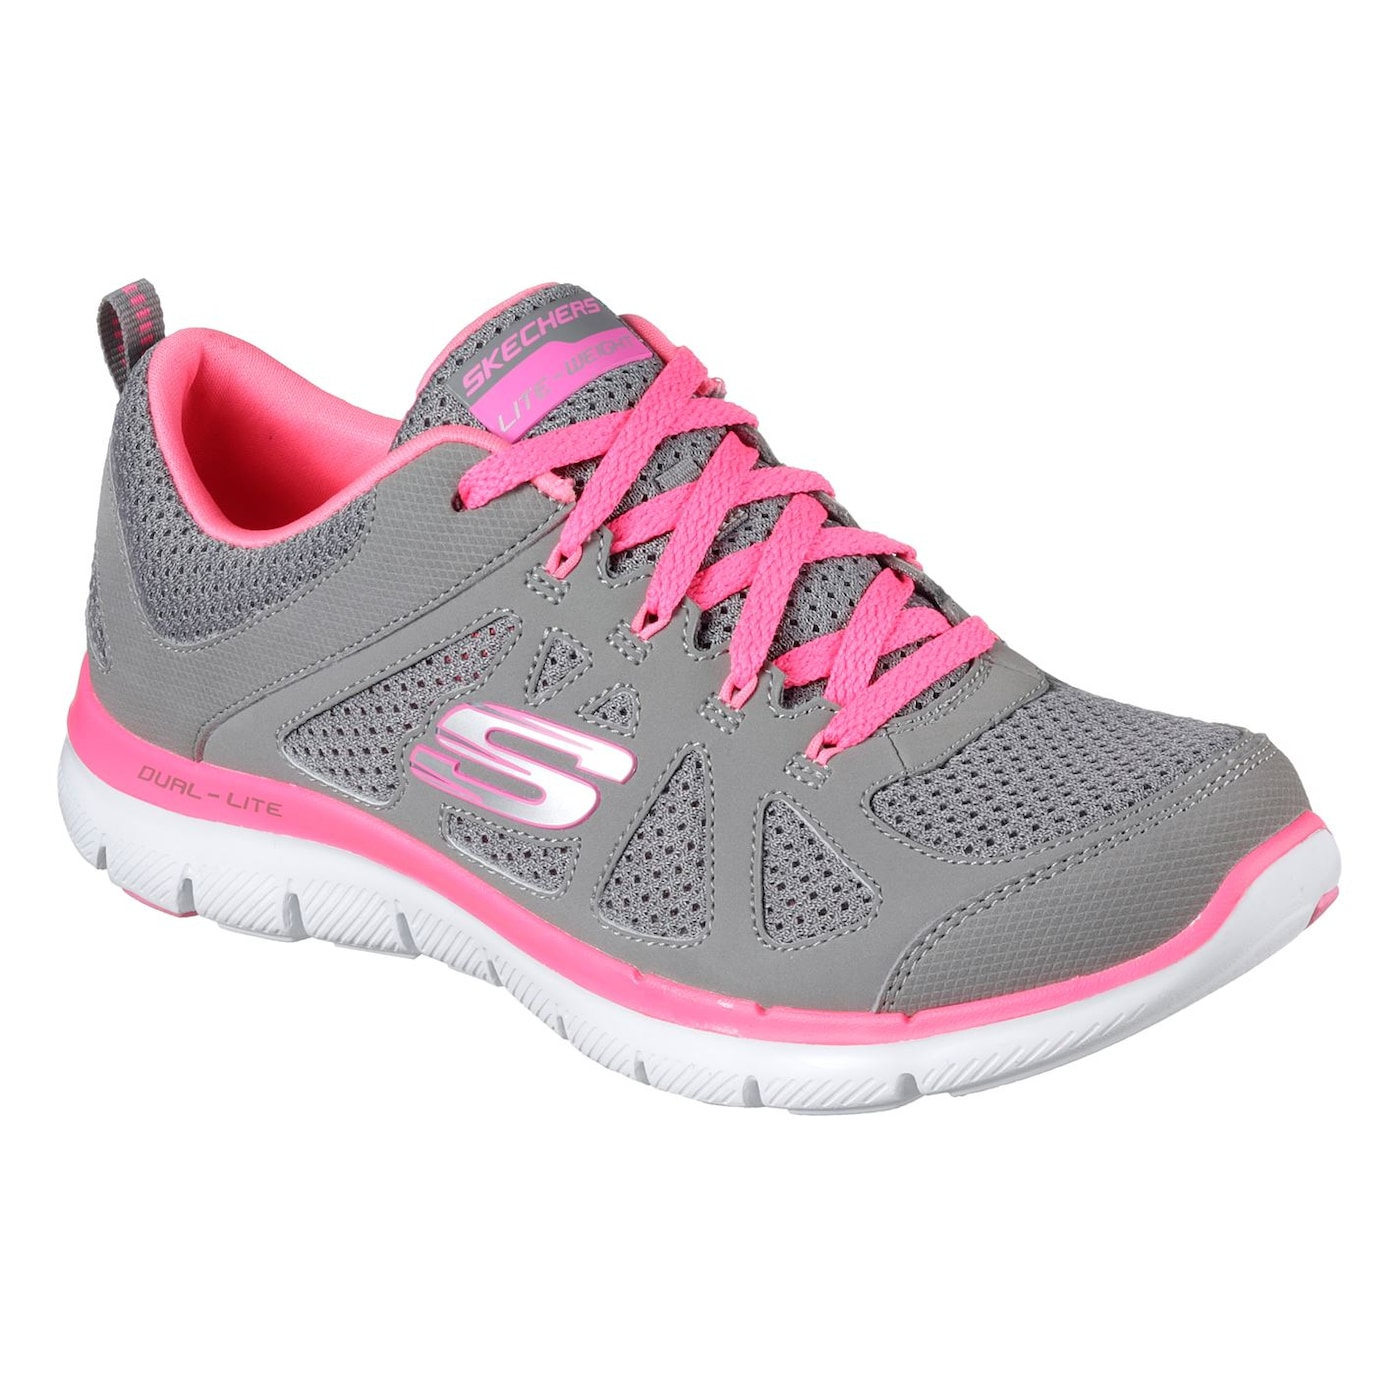 Skechers Flex Appeal Trainers Ladies